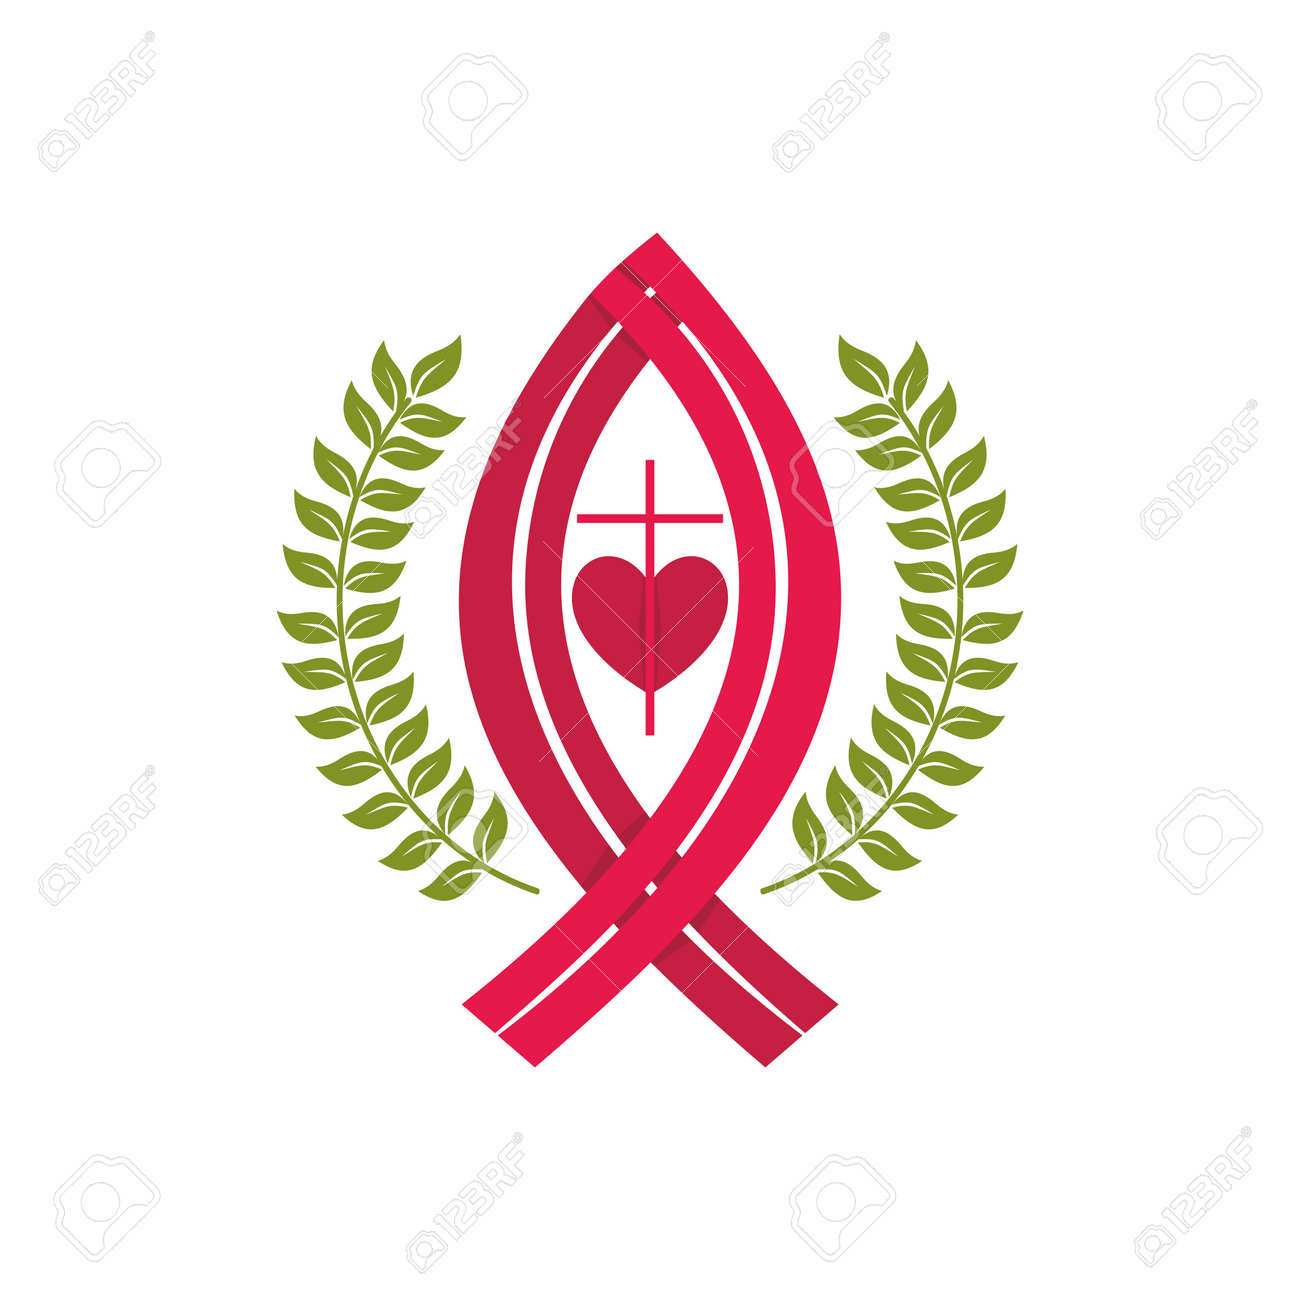 Church logo christian symbols cross jesus fish and heart christian symbols cross jesus fish and heart stock vector buycottarizona Image collections